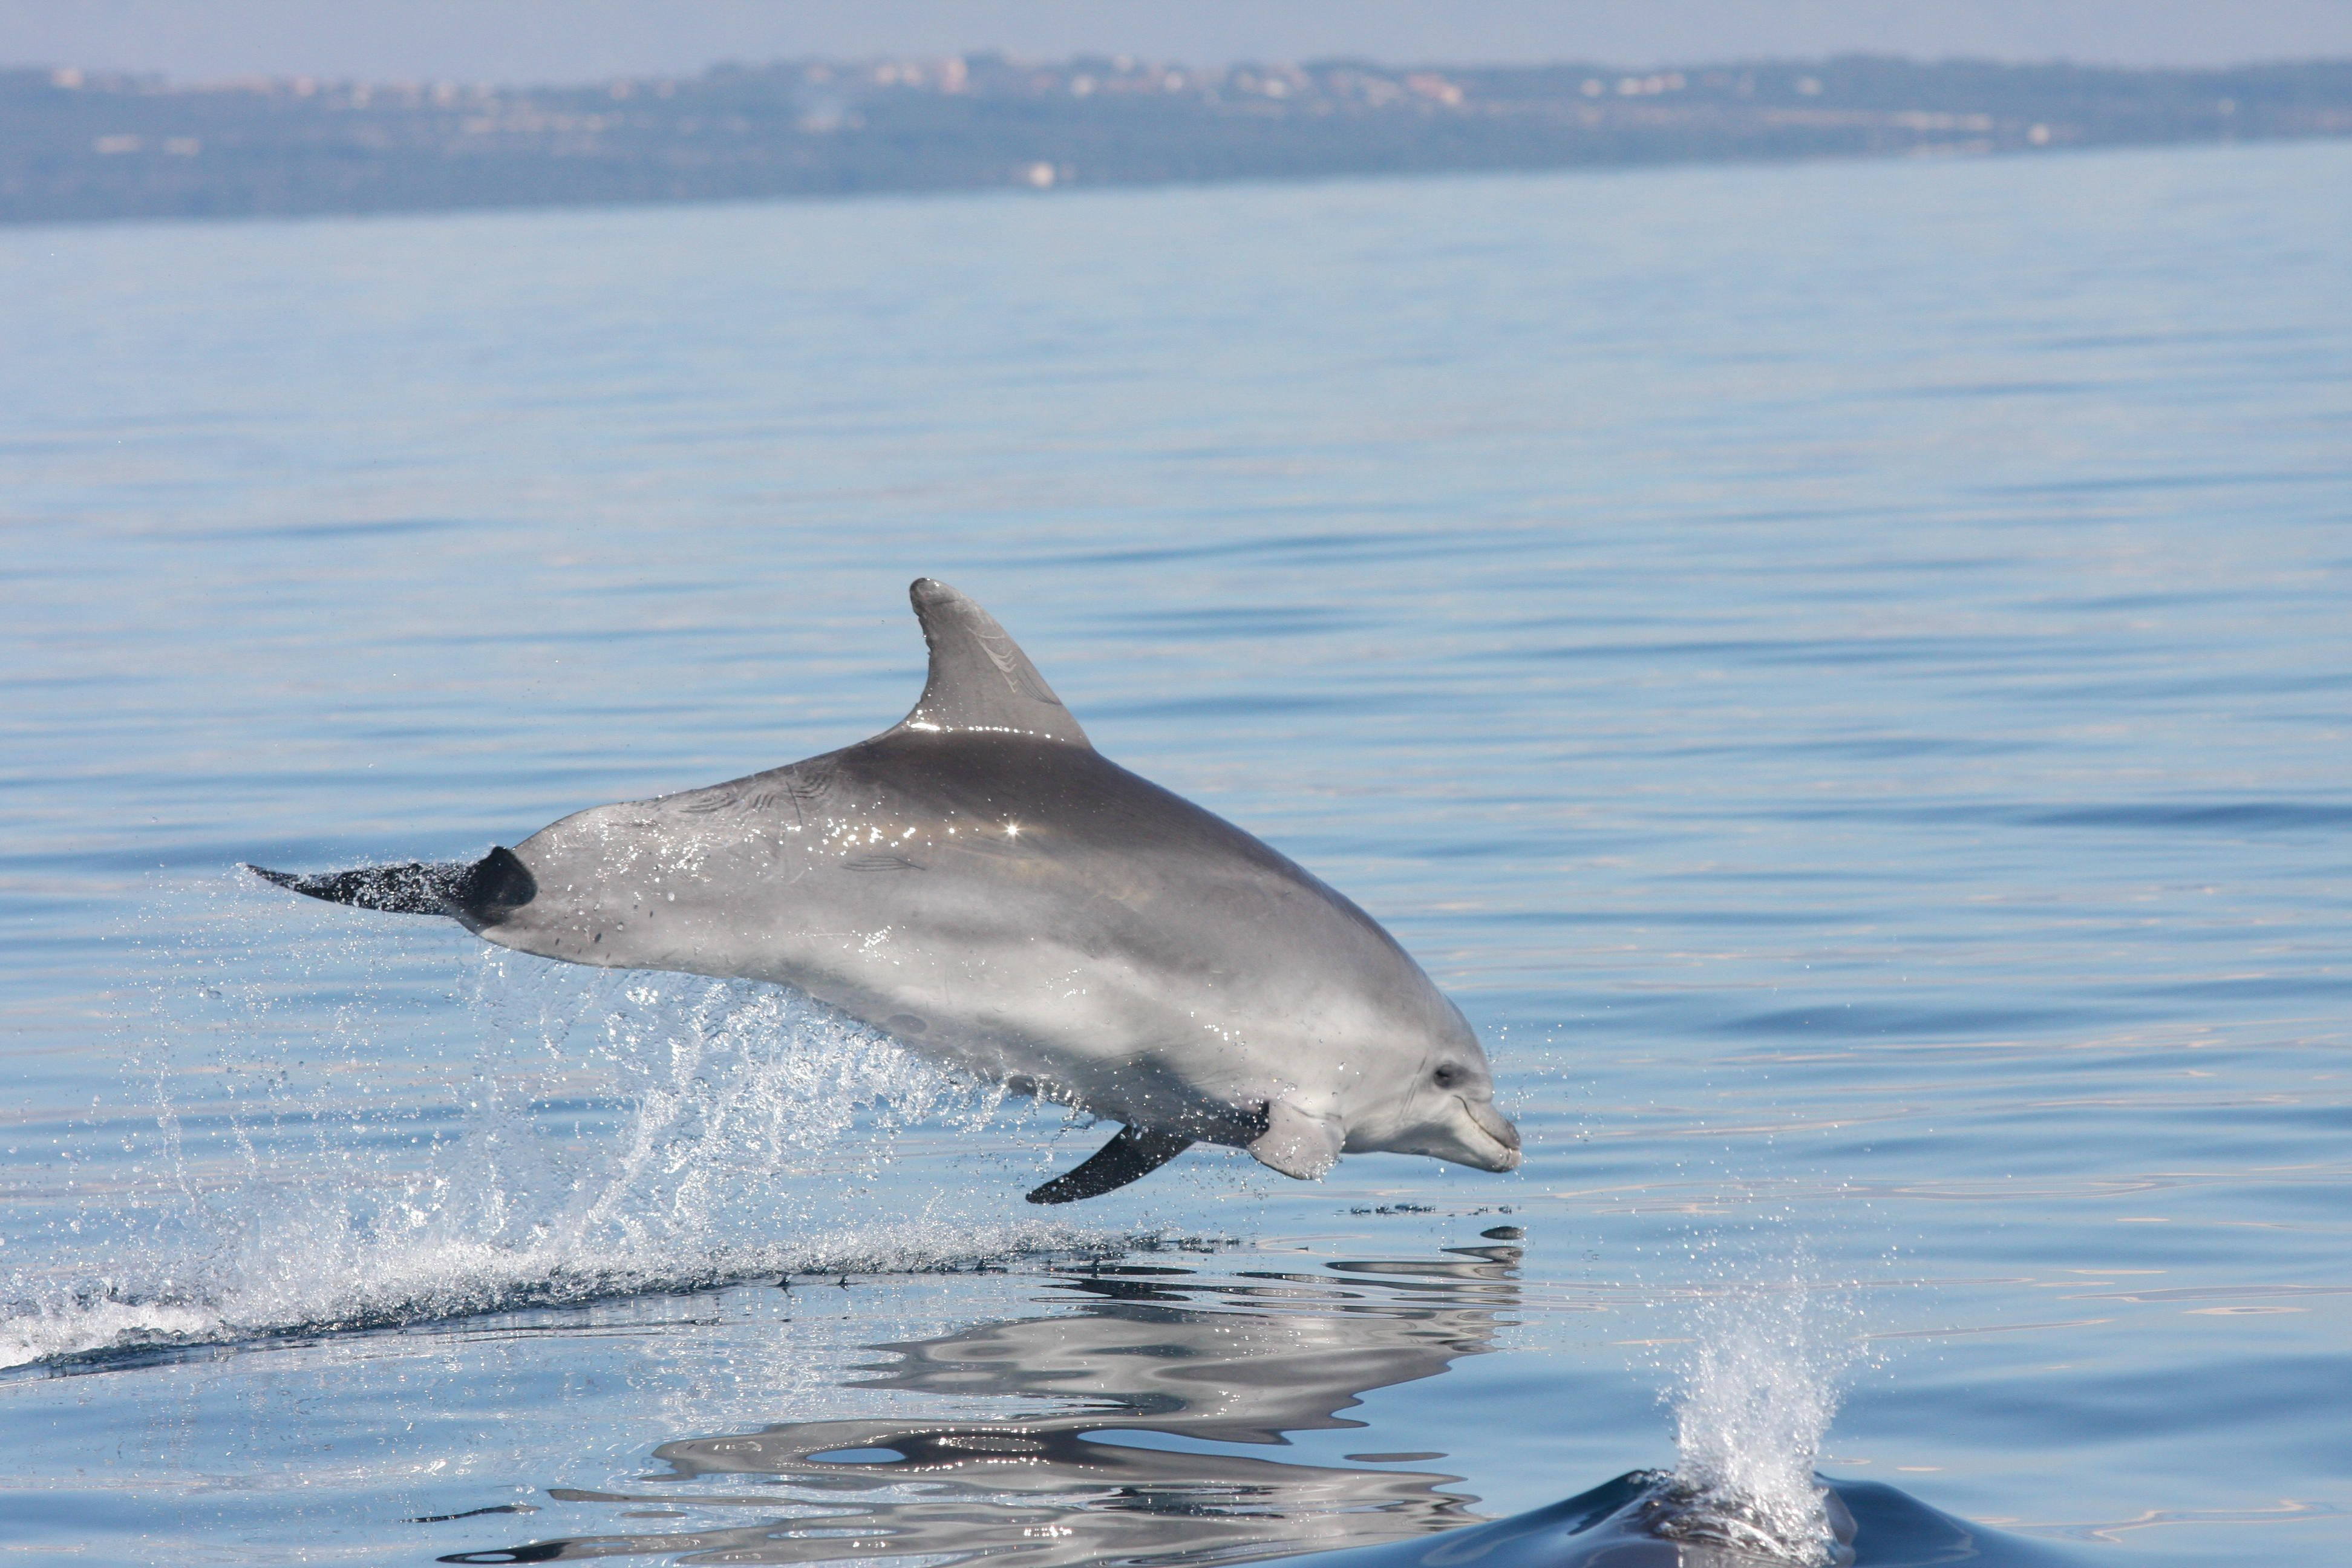 bottlenose dolphin research paper 10 facts about bottlenose dolphins where do bottlenose dolphins live how do they breathe what do they eat find out all about this marine mammal here.